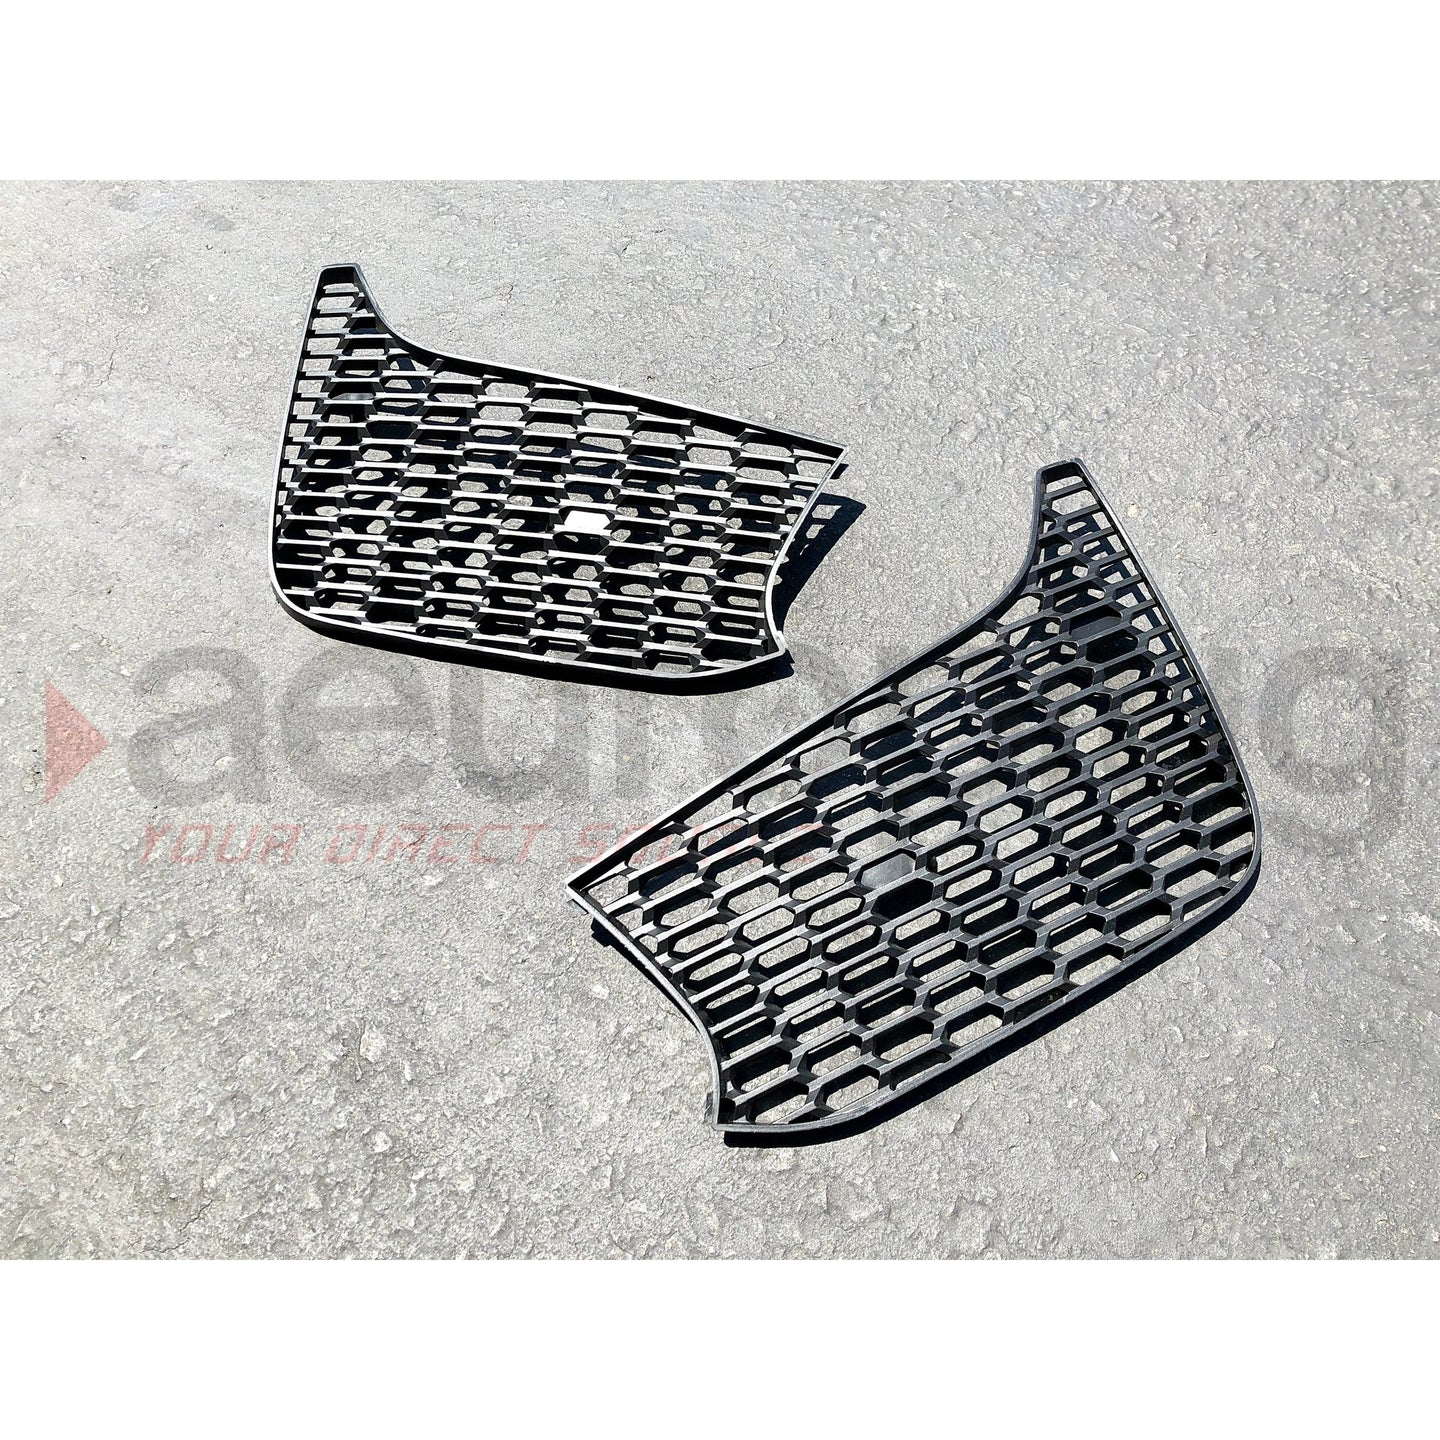 BMW F30 REPLACEMENT AIRDUCT GRILLE FOR M3 STYLE FRONT BUMPER - AEUROPLUG